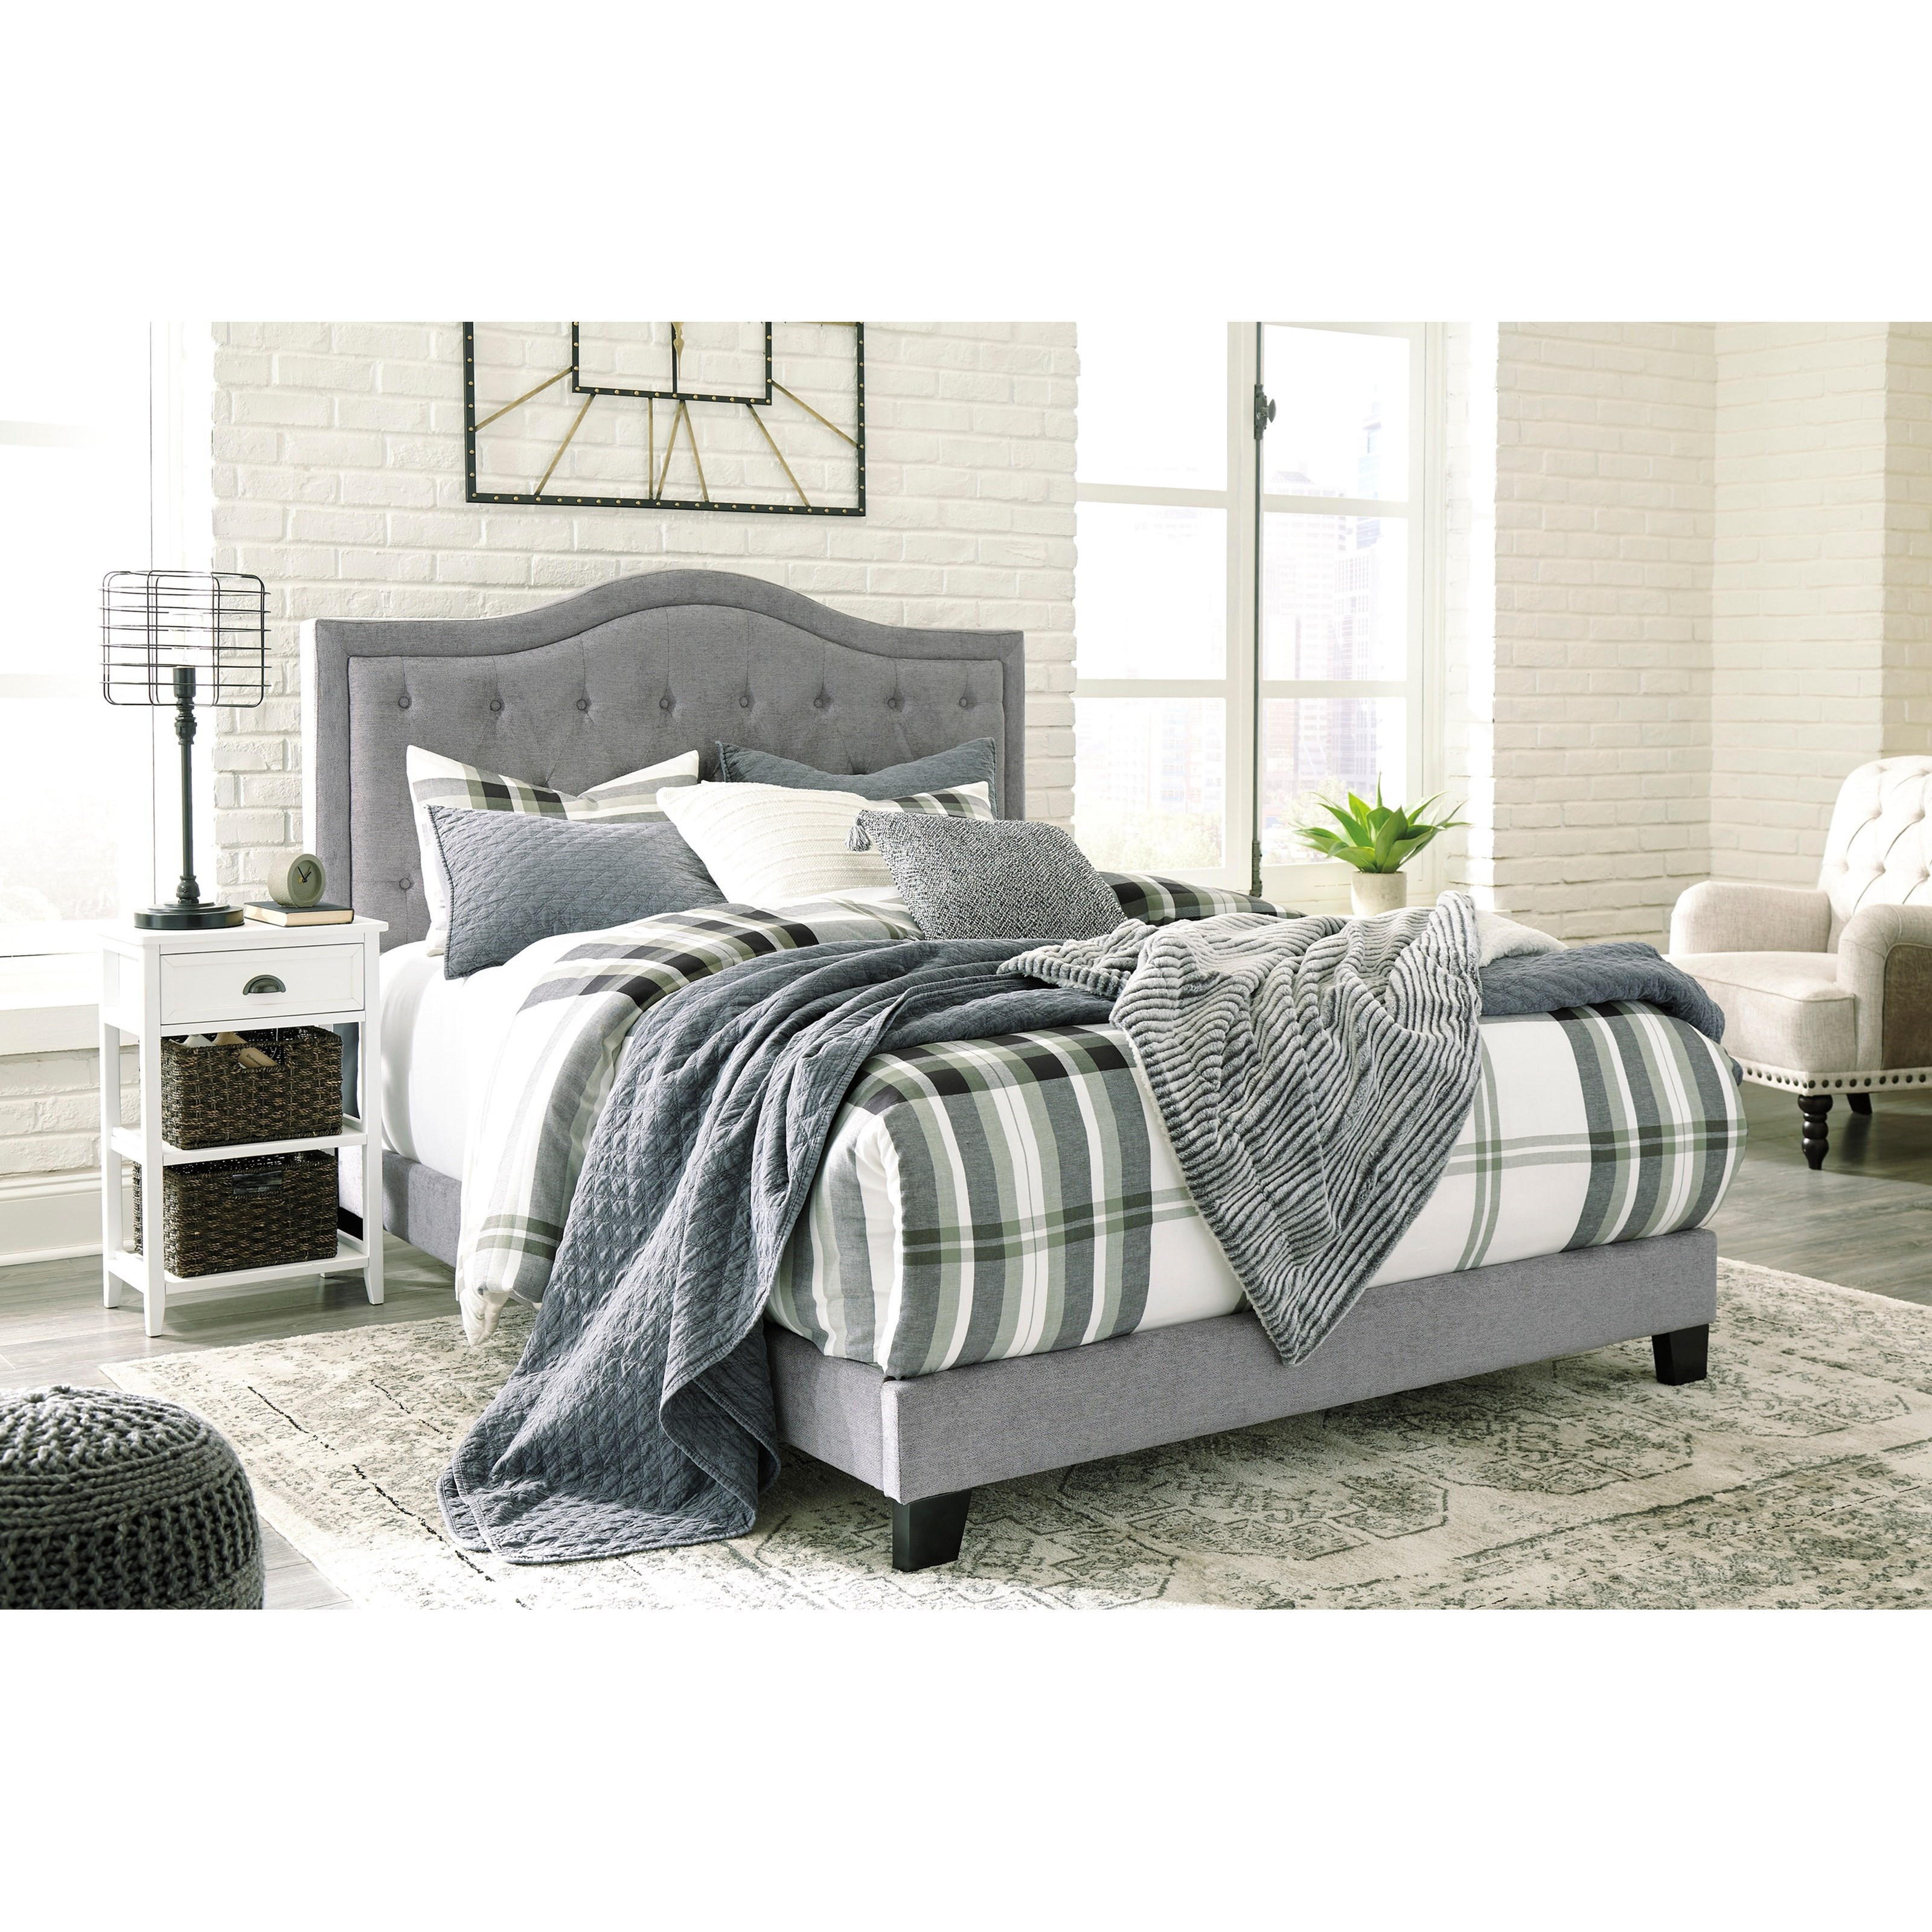 Signature Design By Ashley Jerary King Upholstered Bed